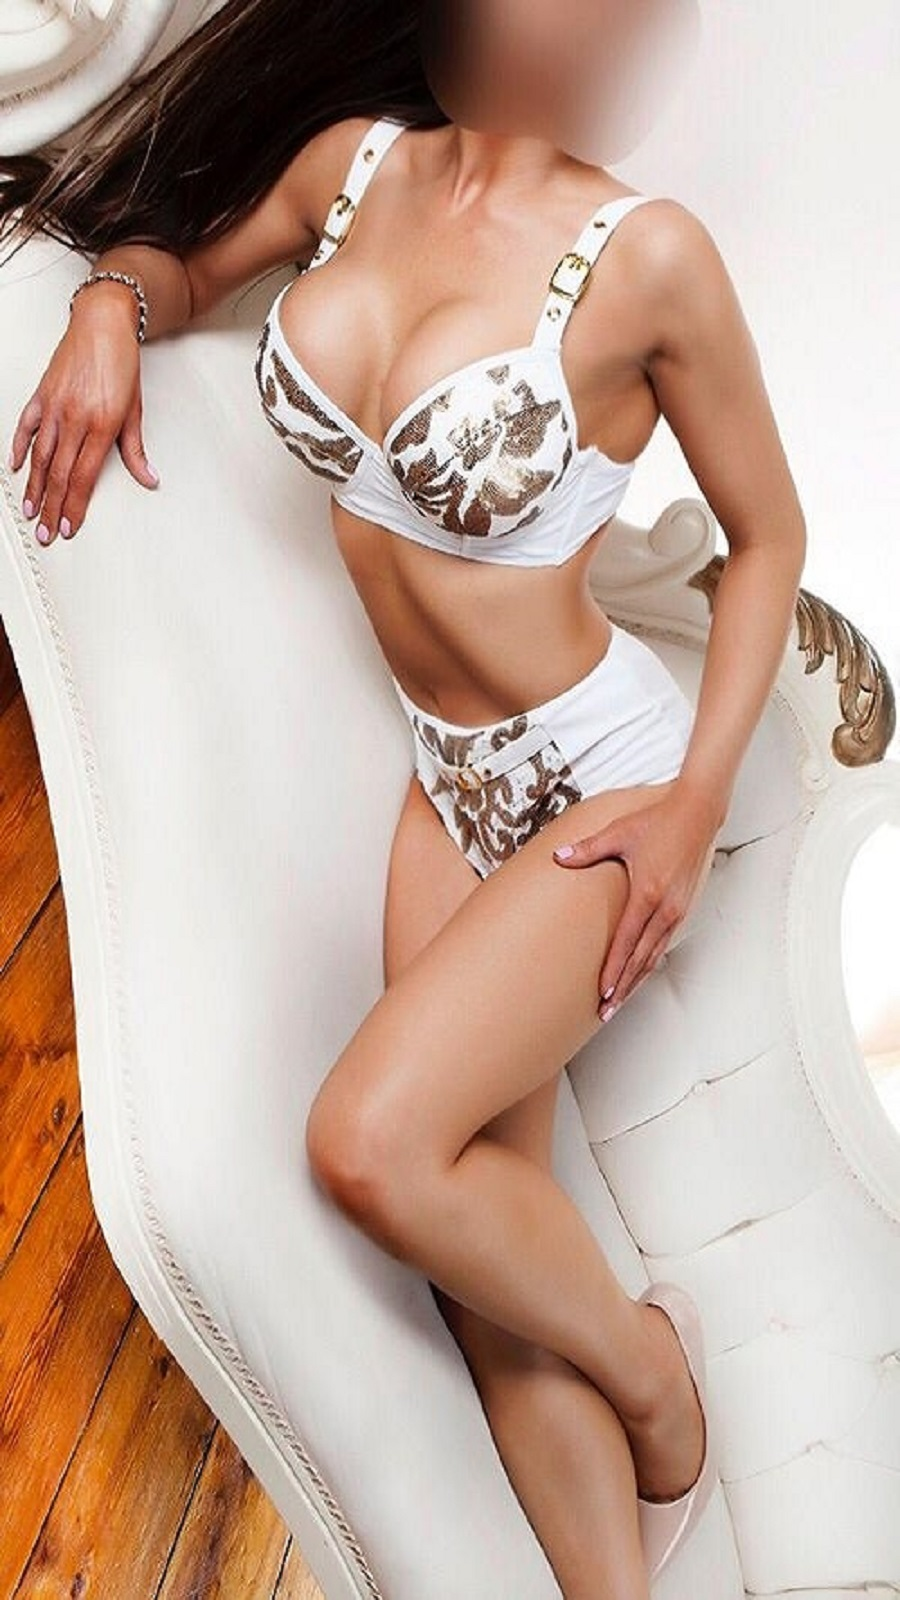 If you are looking for the perfect companion tonight give us a call on 07412621234 to book Sophia for the best night of your life.